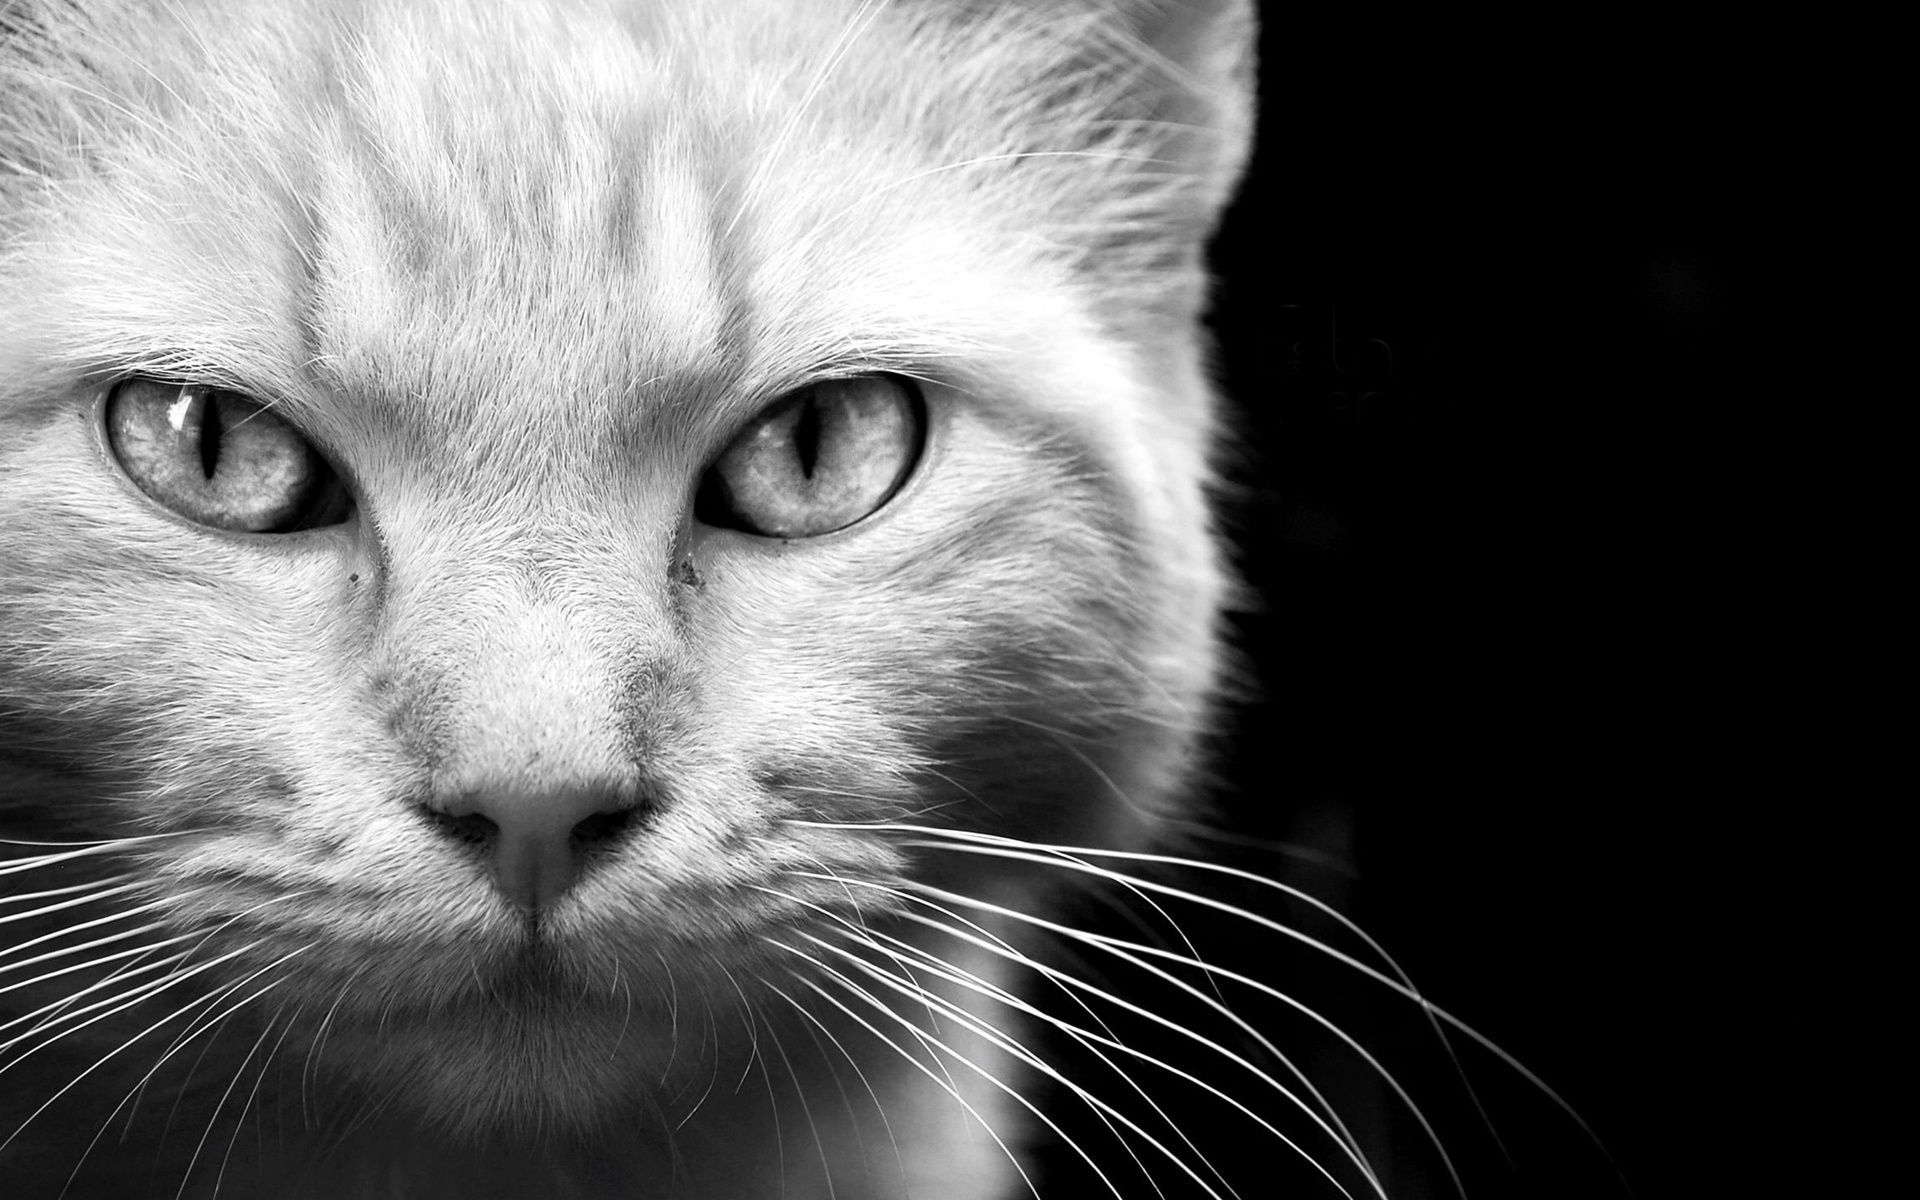 Animals cats felines face eyes whiskers fur black white ...